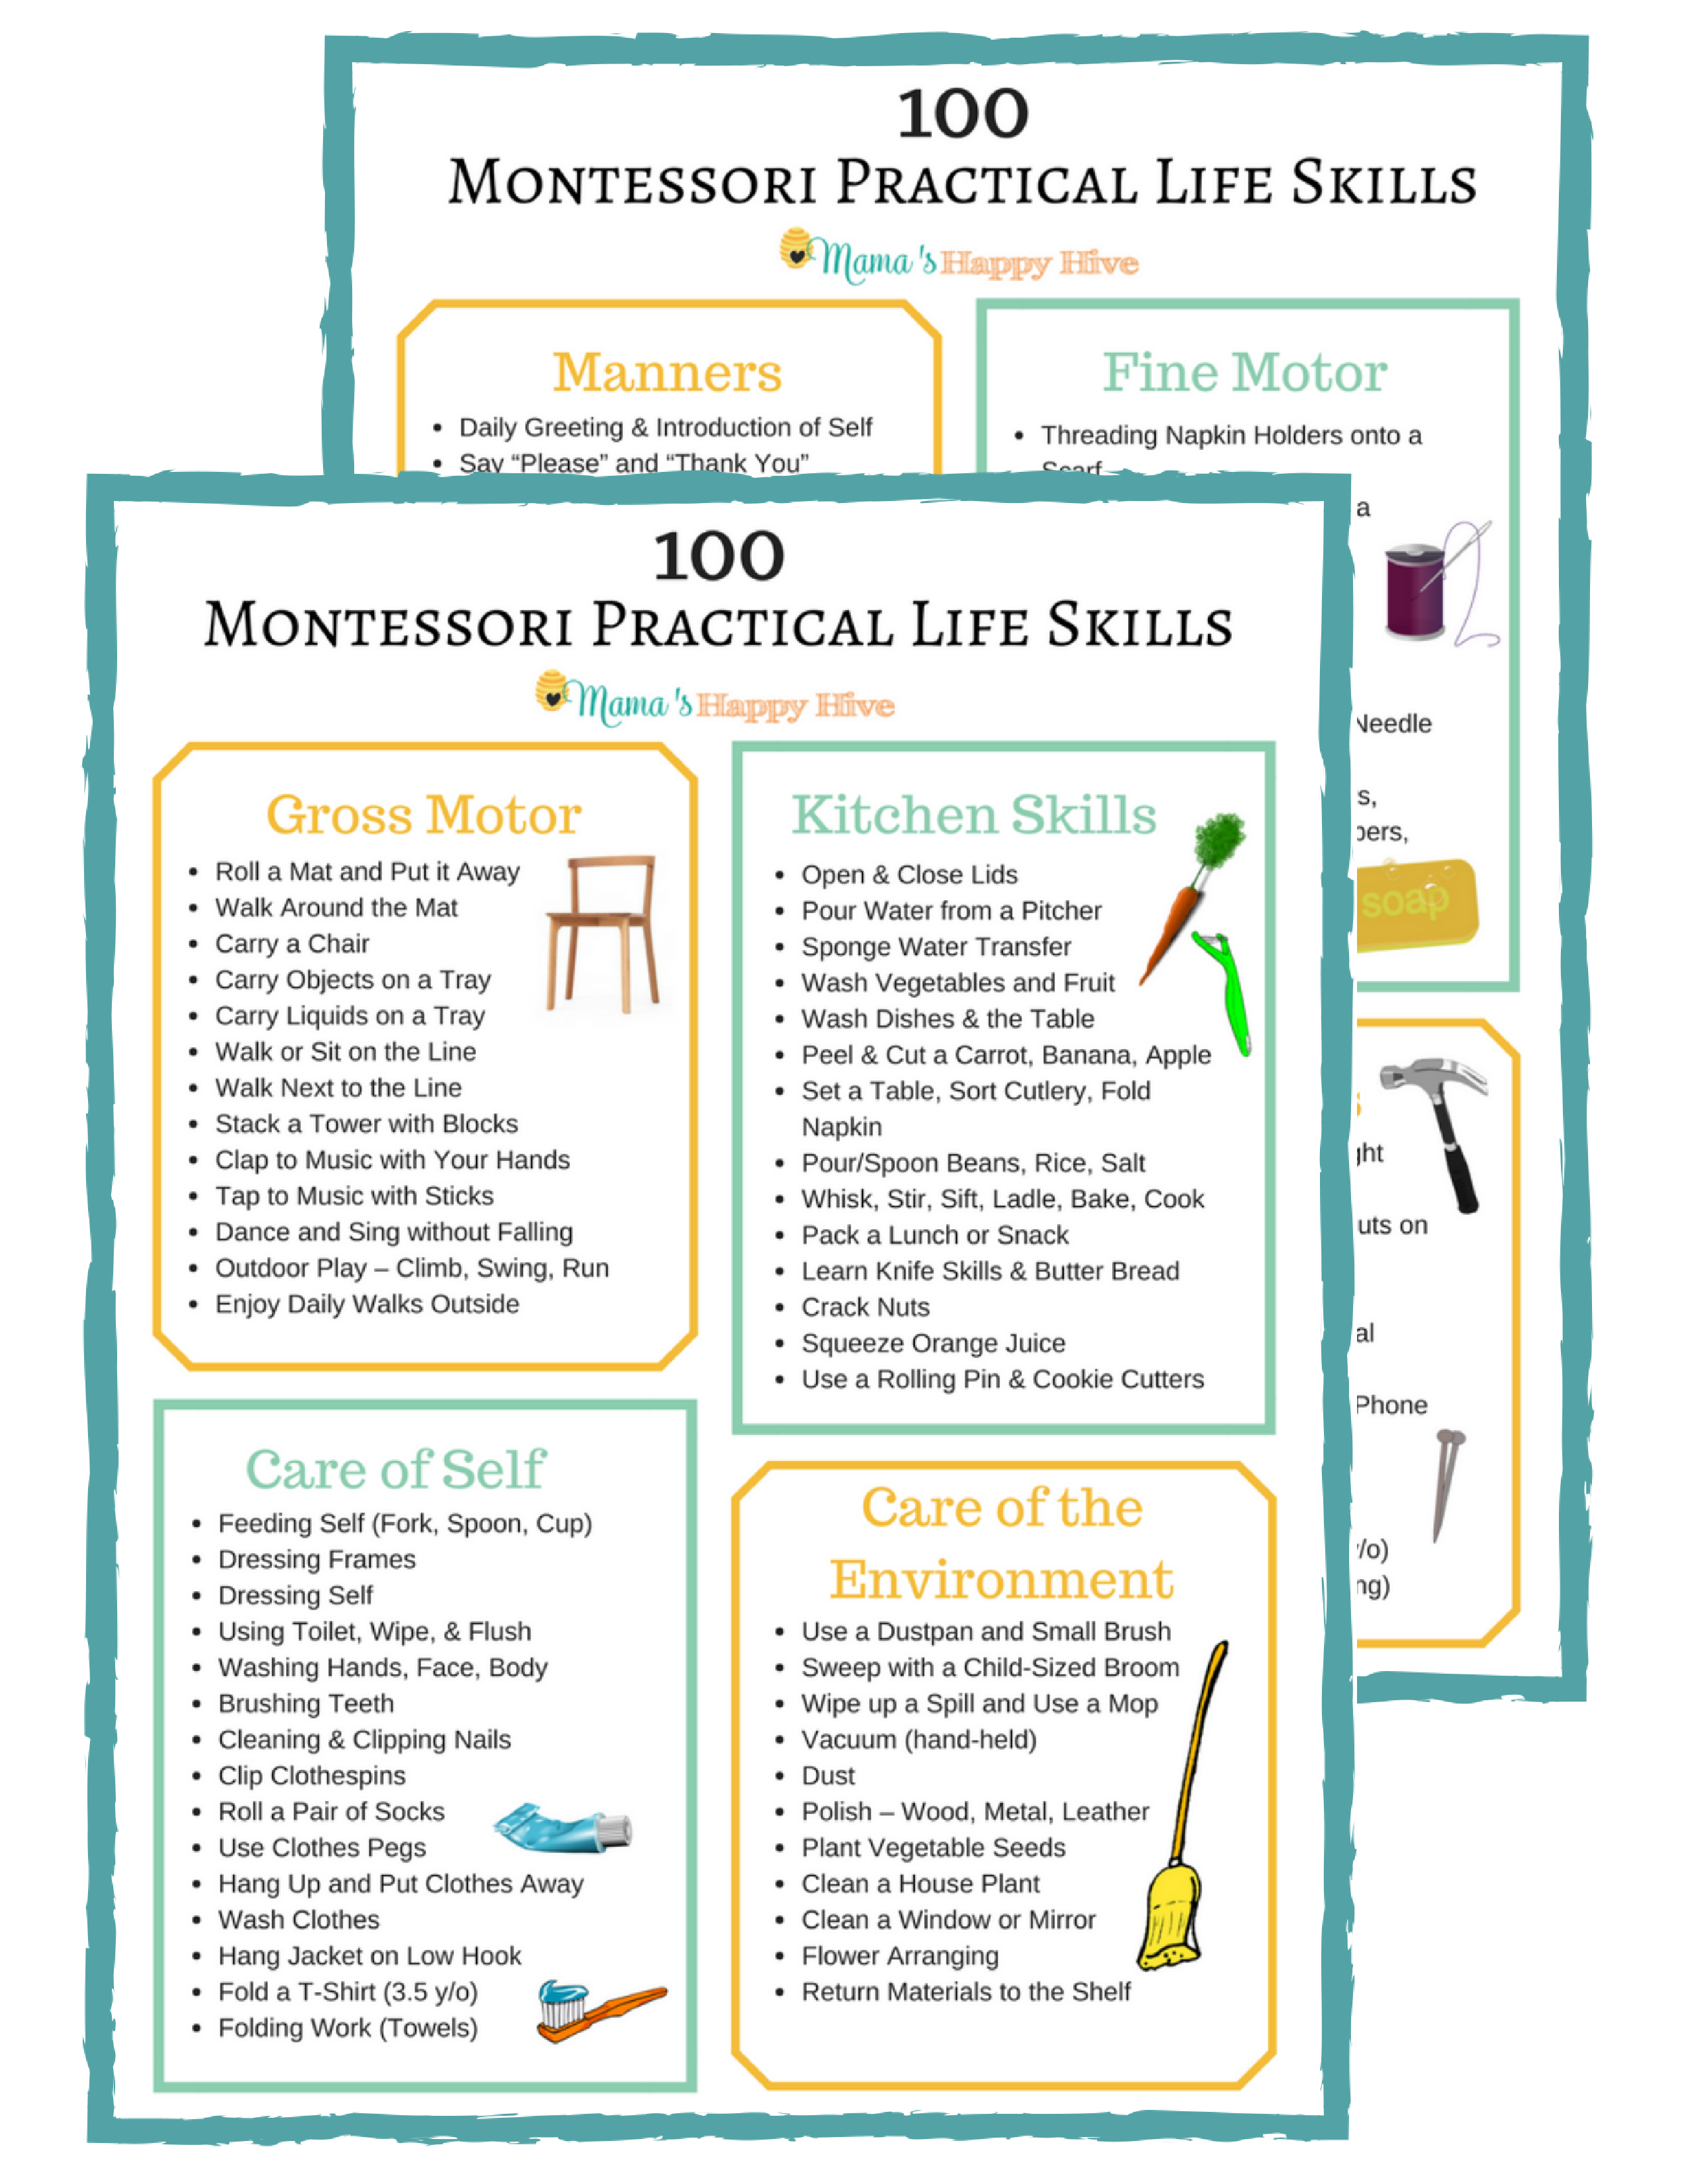 Fall Harvest Recipes Montessori Style